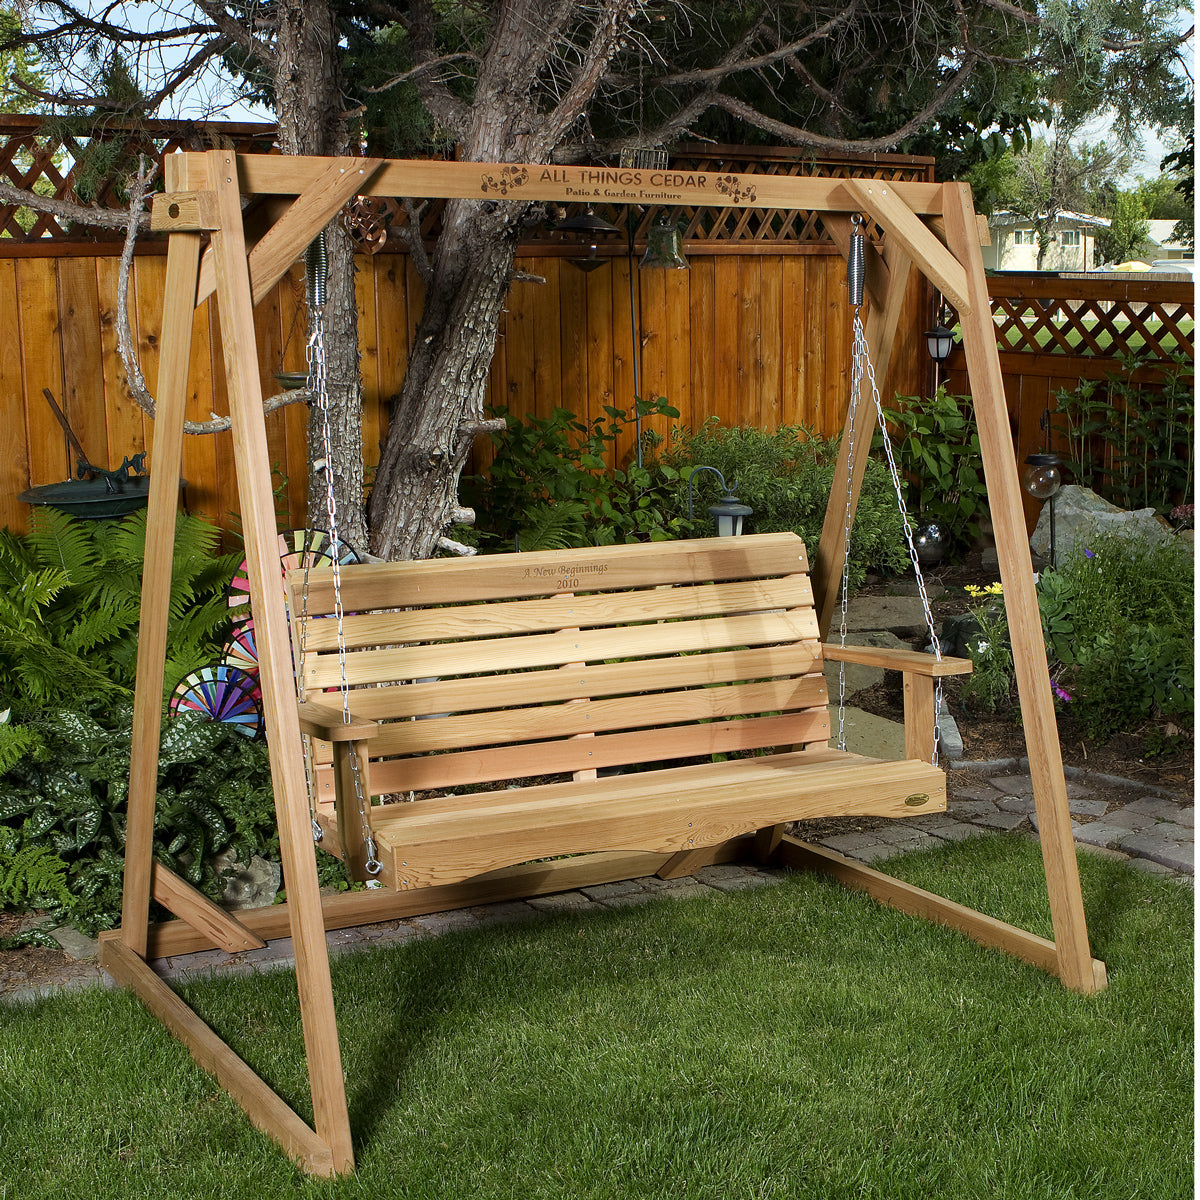 Porch Swing Set 6' Swing A-Frame and 4' Cedar - Swings and More